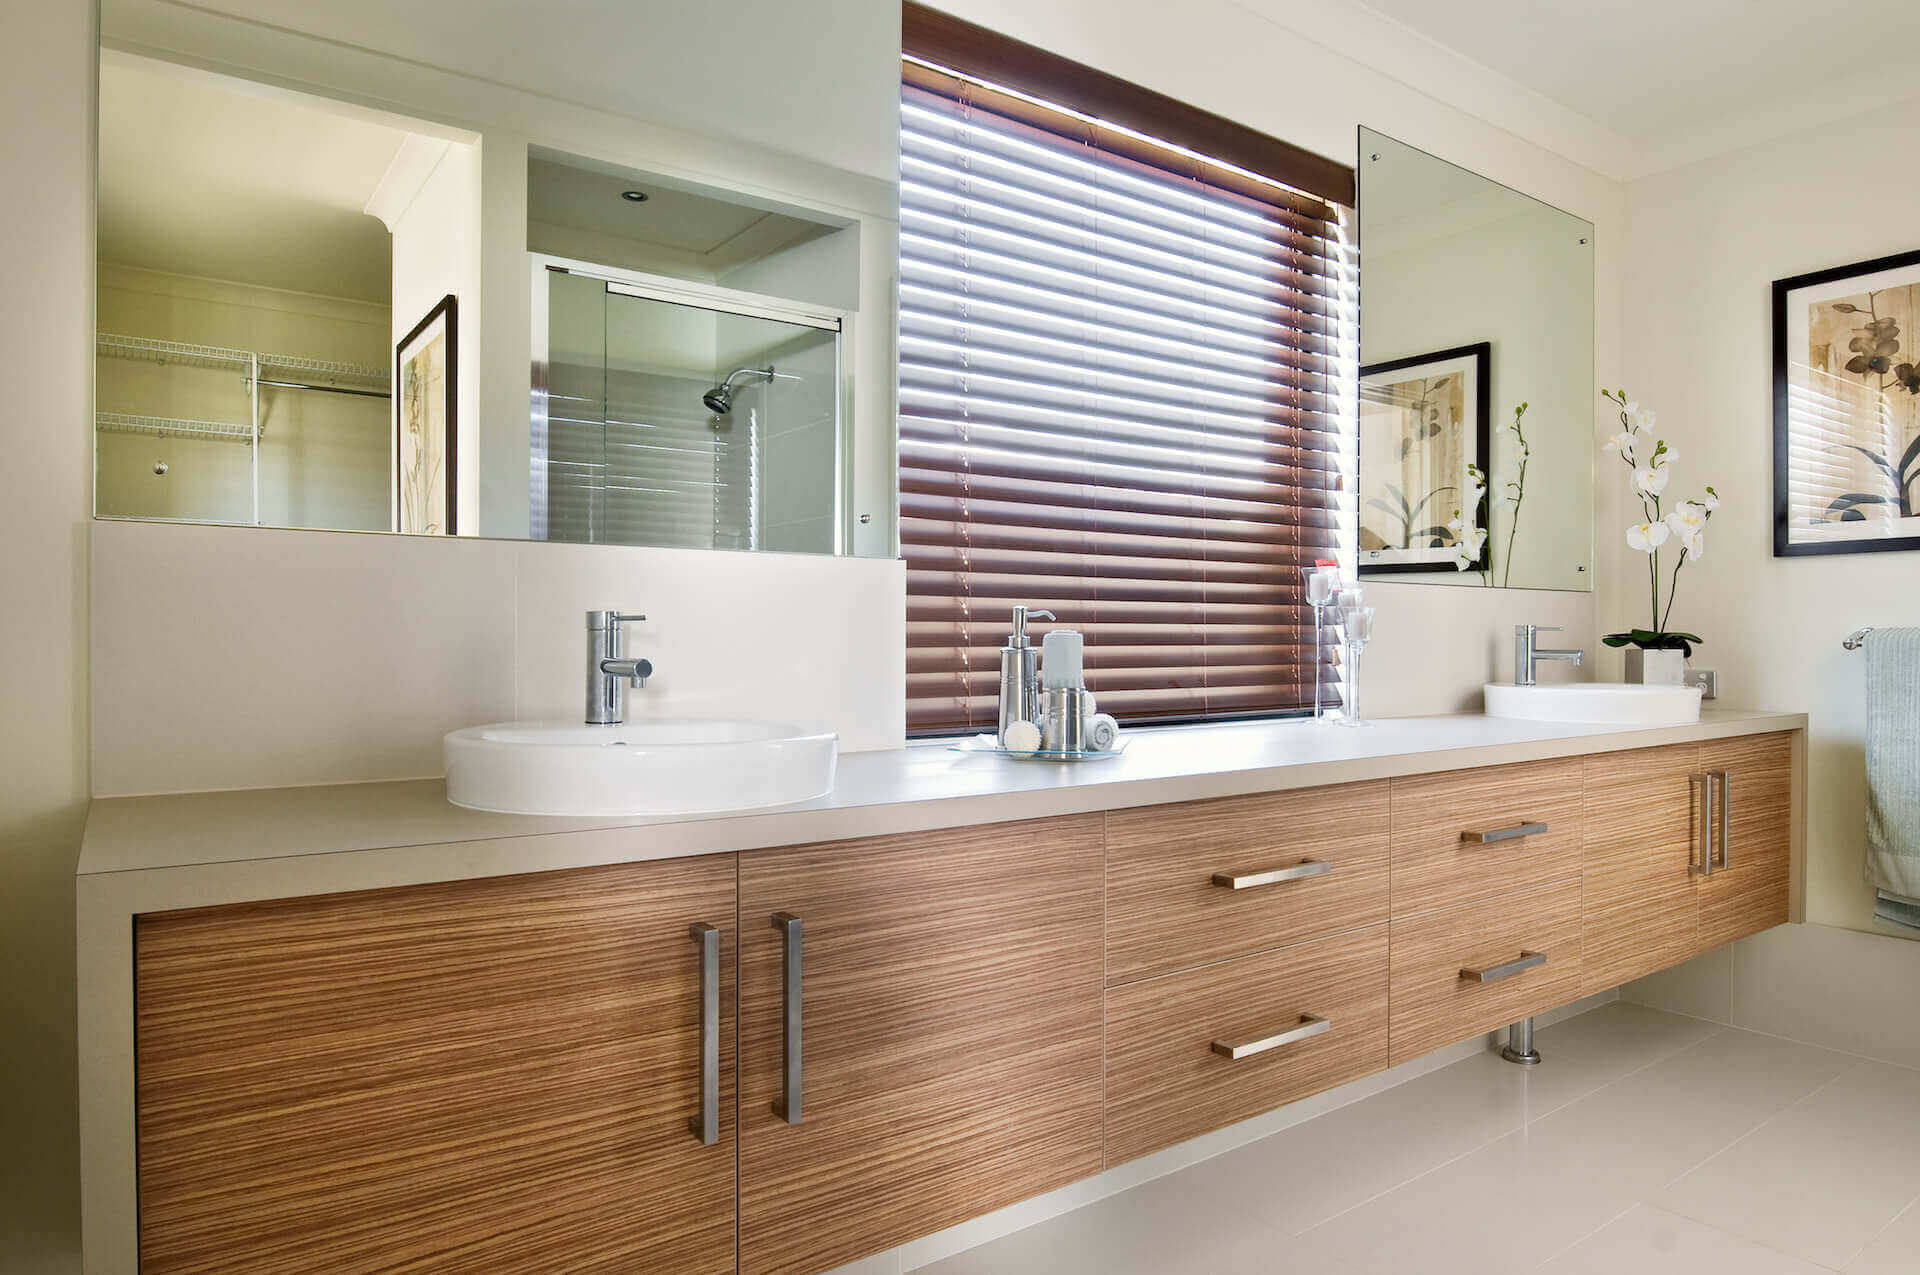 Rural Building Co - The Coastal View home - bathroom with double basins